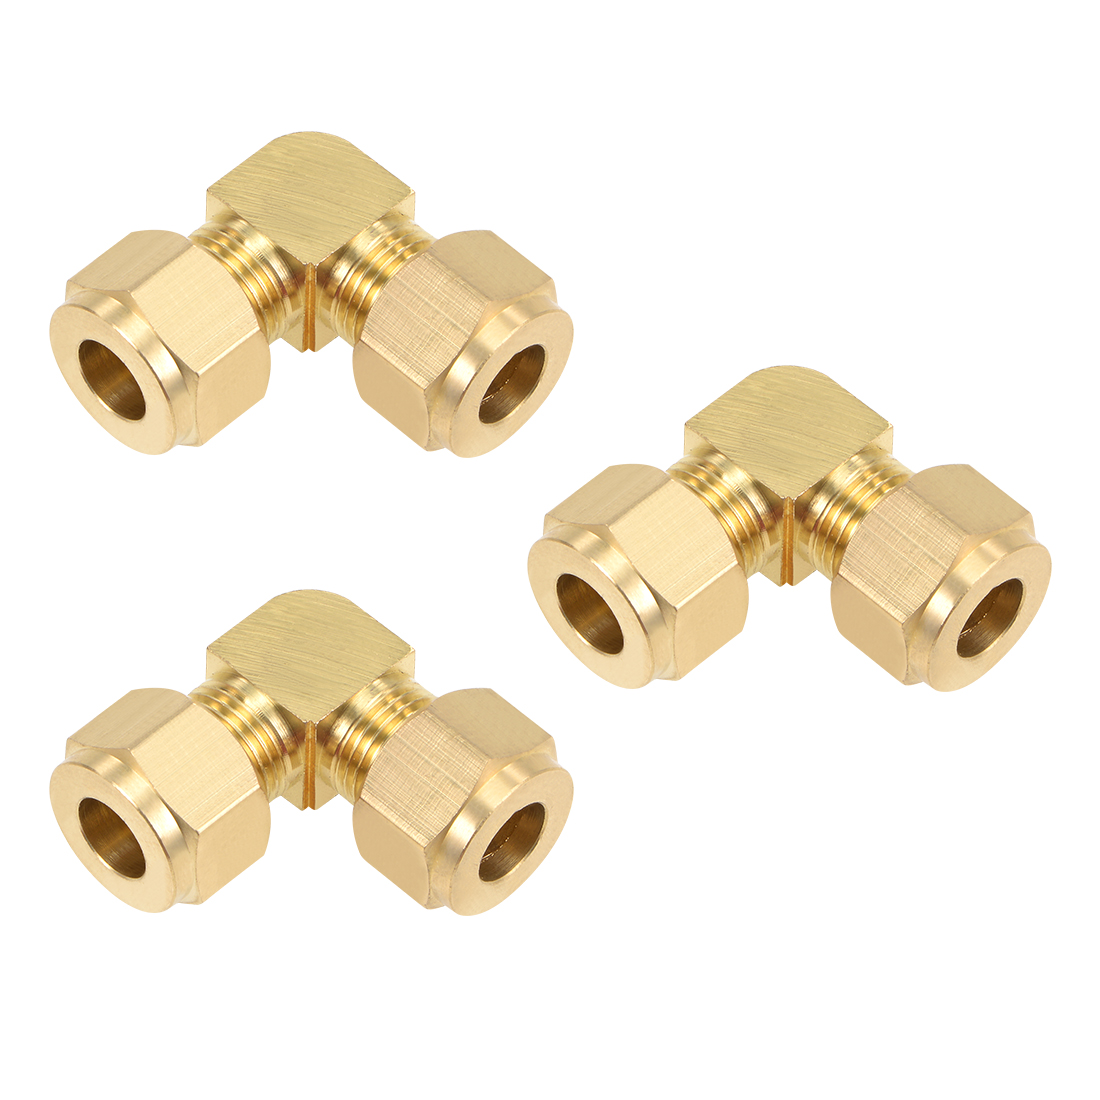 Brass Compression Tube Fitting 9.7mm OD 90 Degree Elbow Pipe Adapter 3Pcs